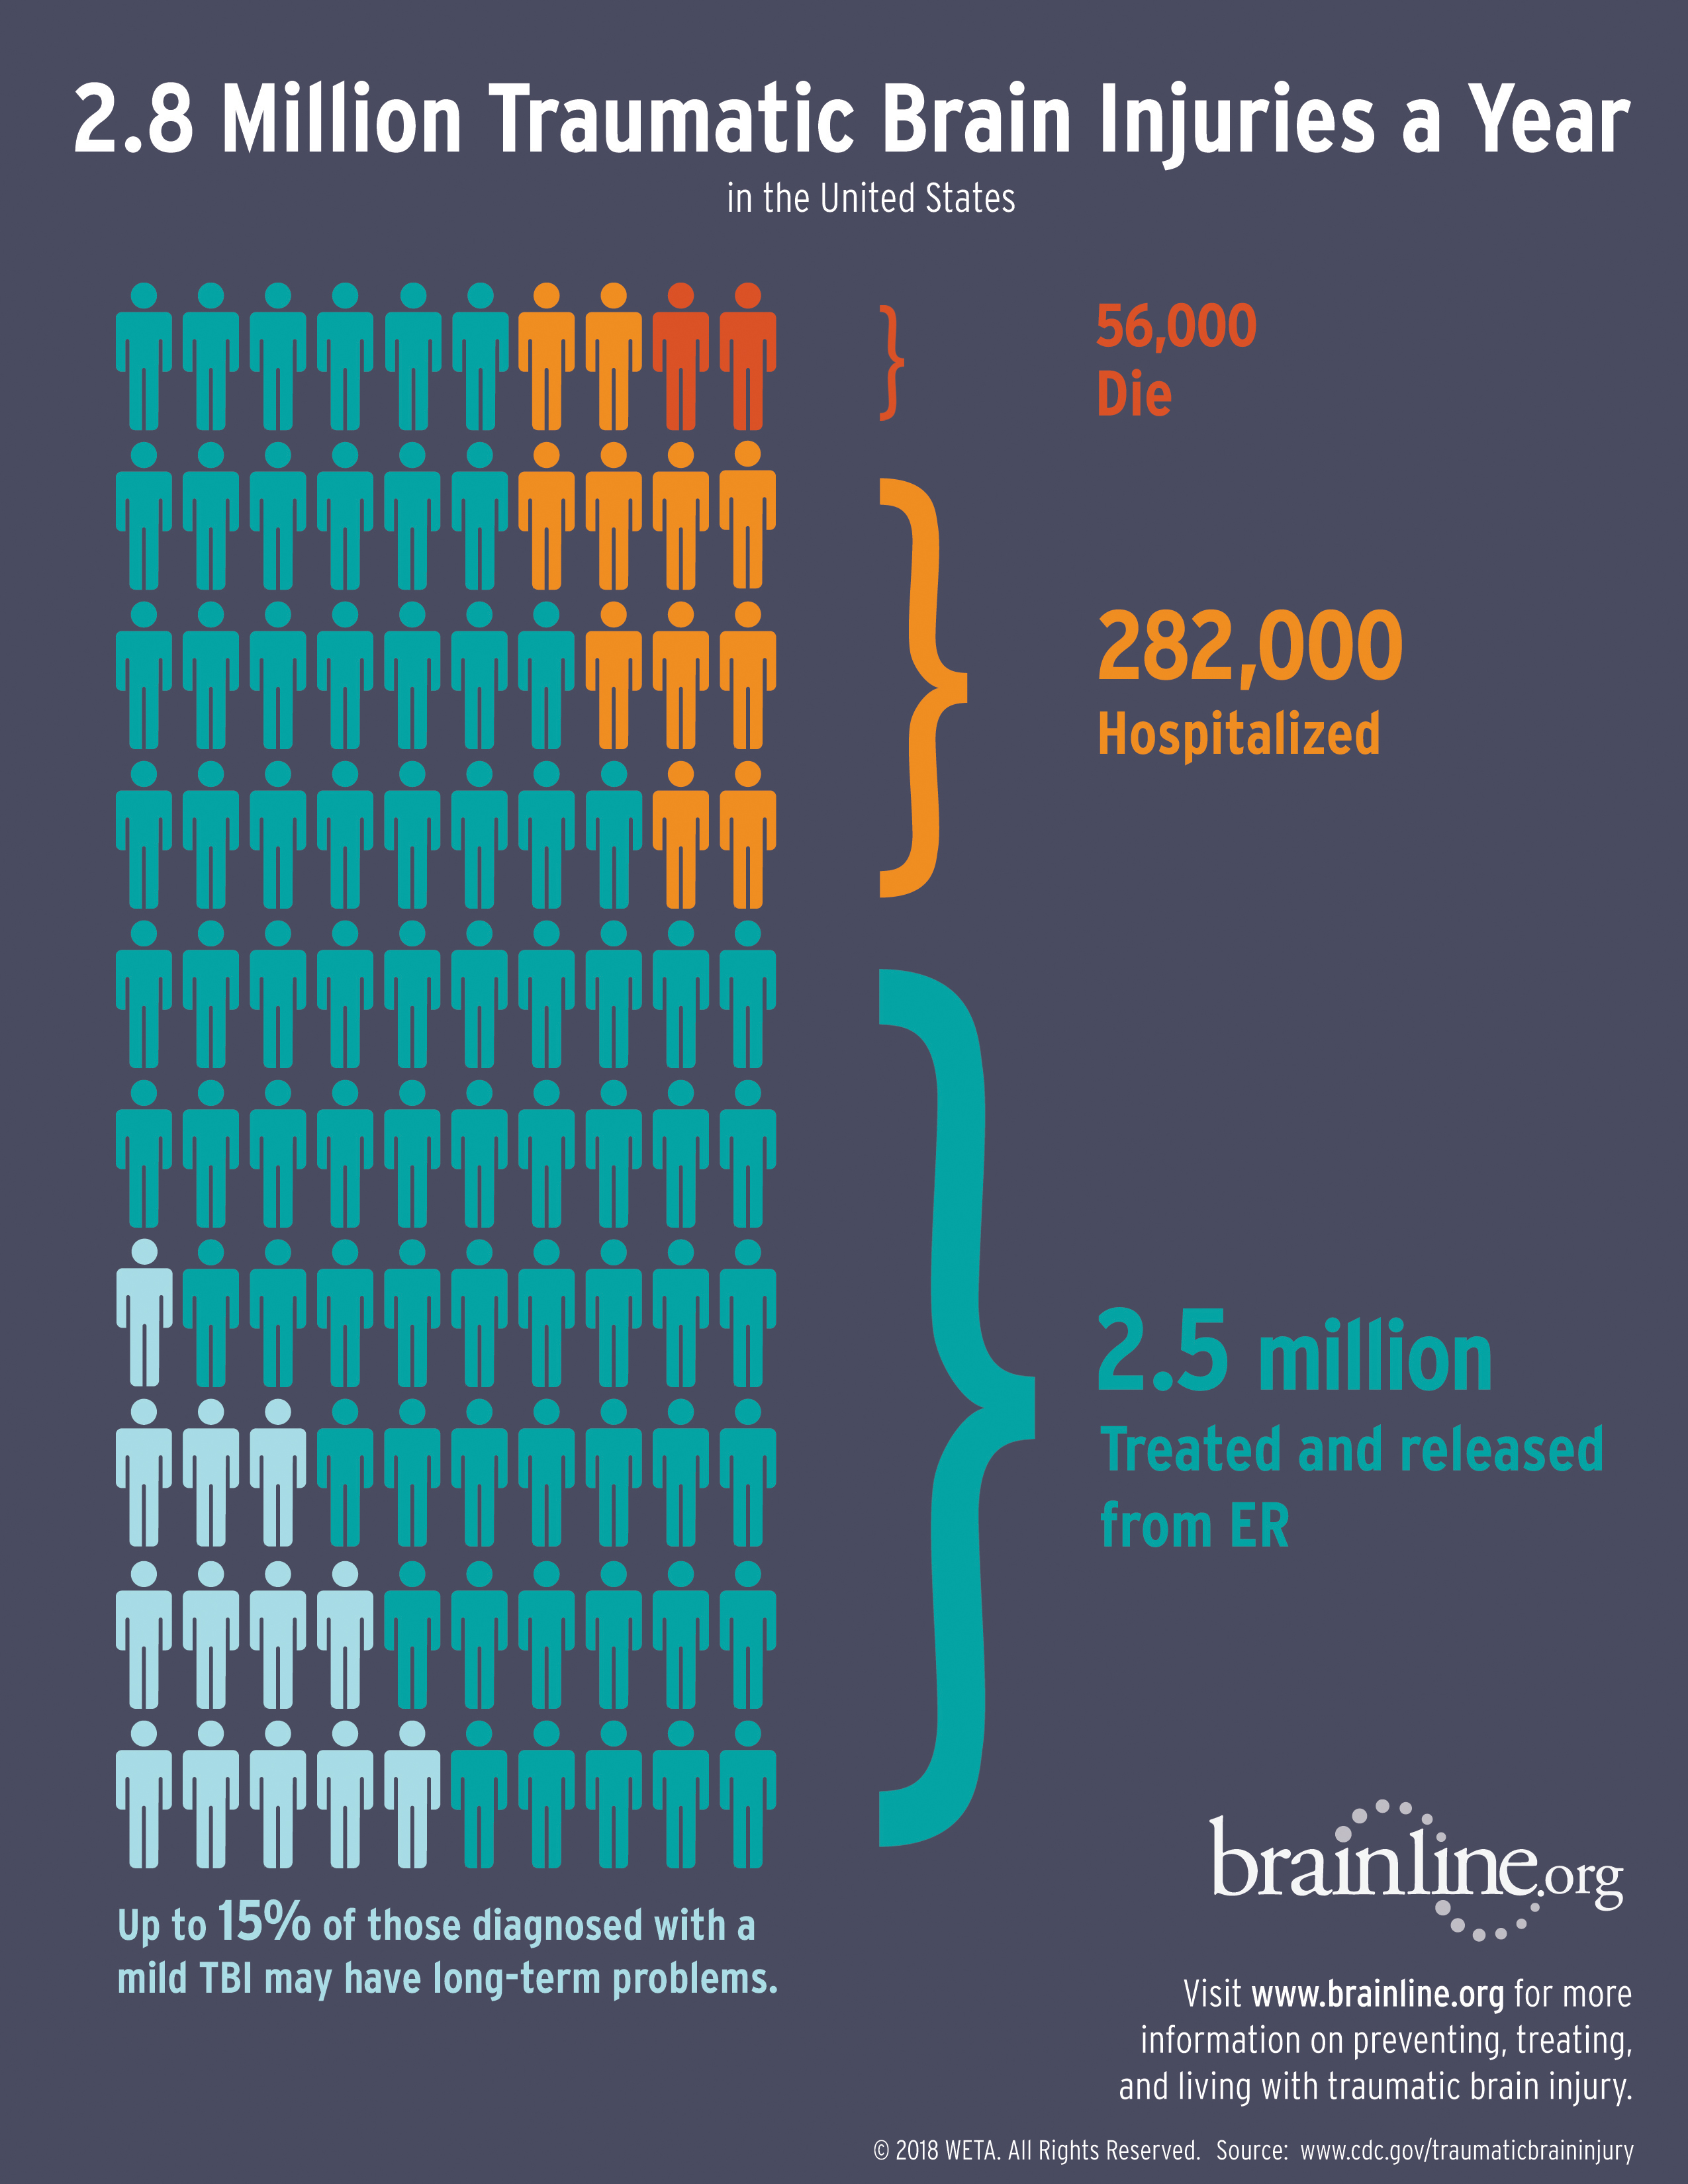 Infographic: New Annual Traumatic Brain Injury Numbers